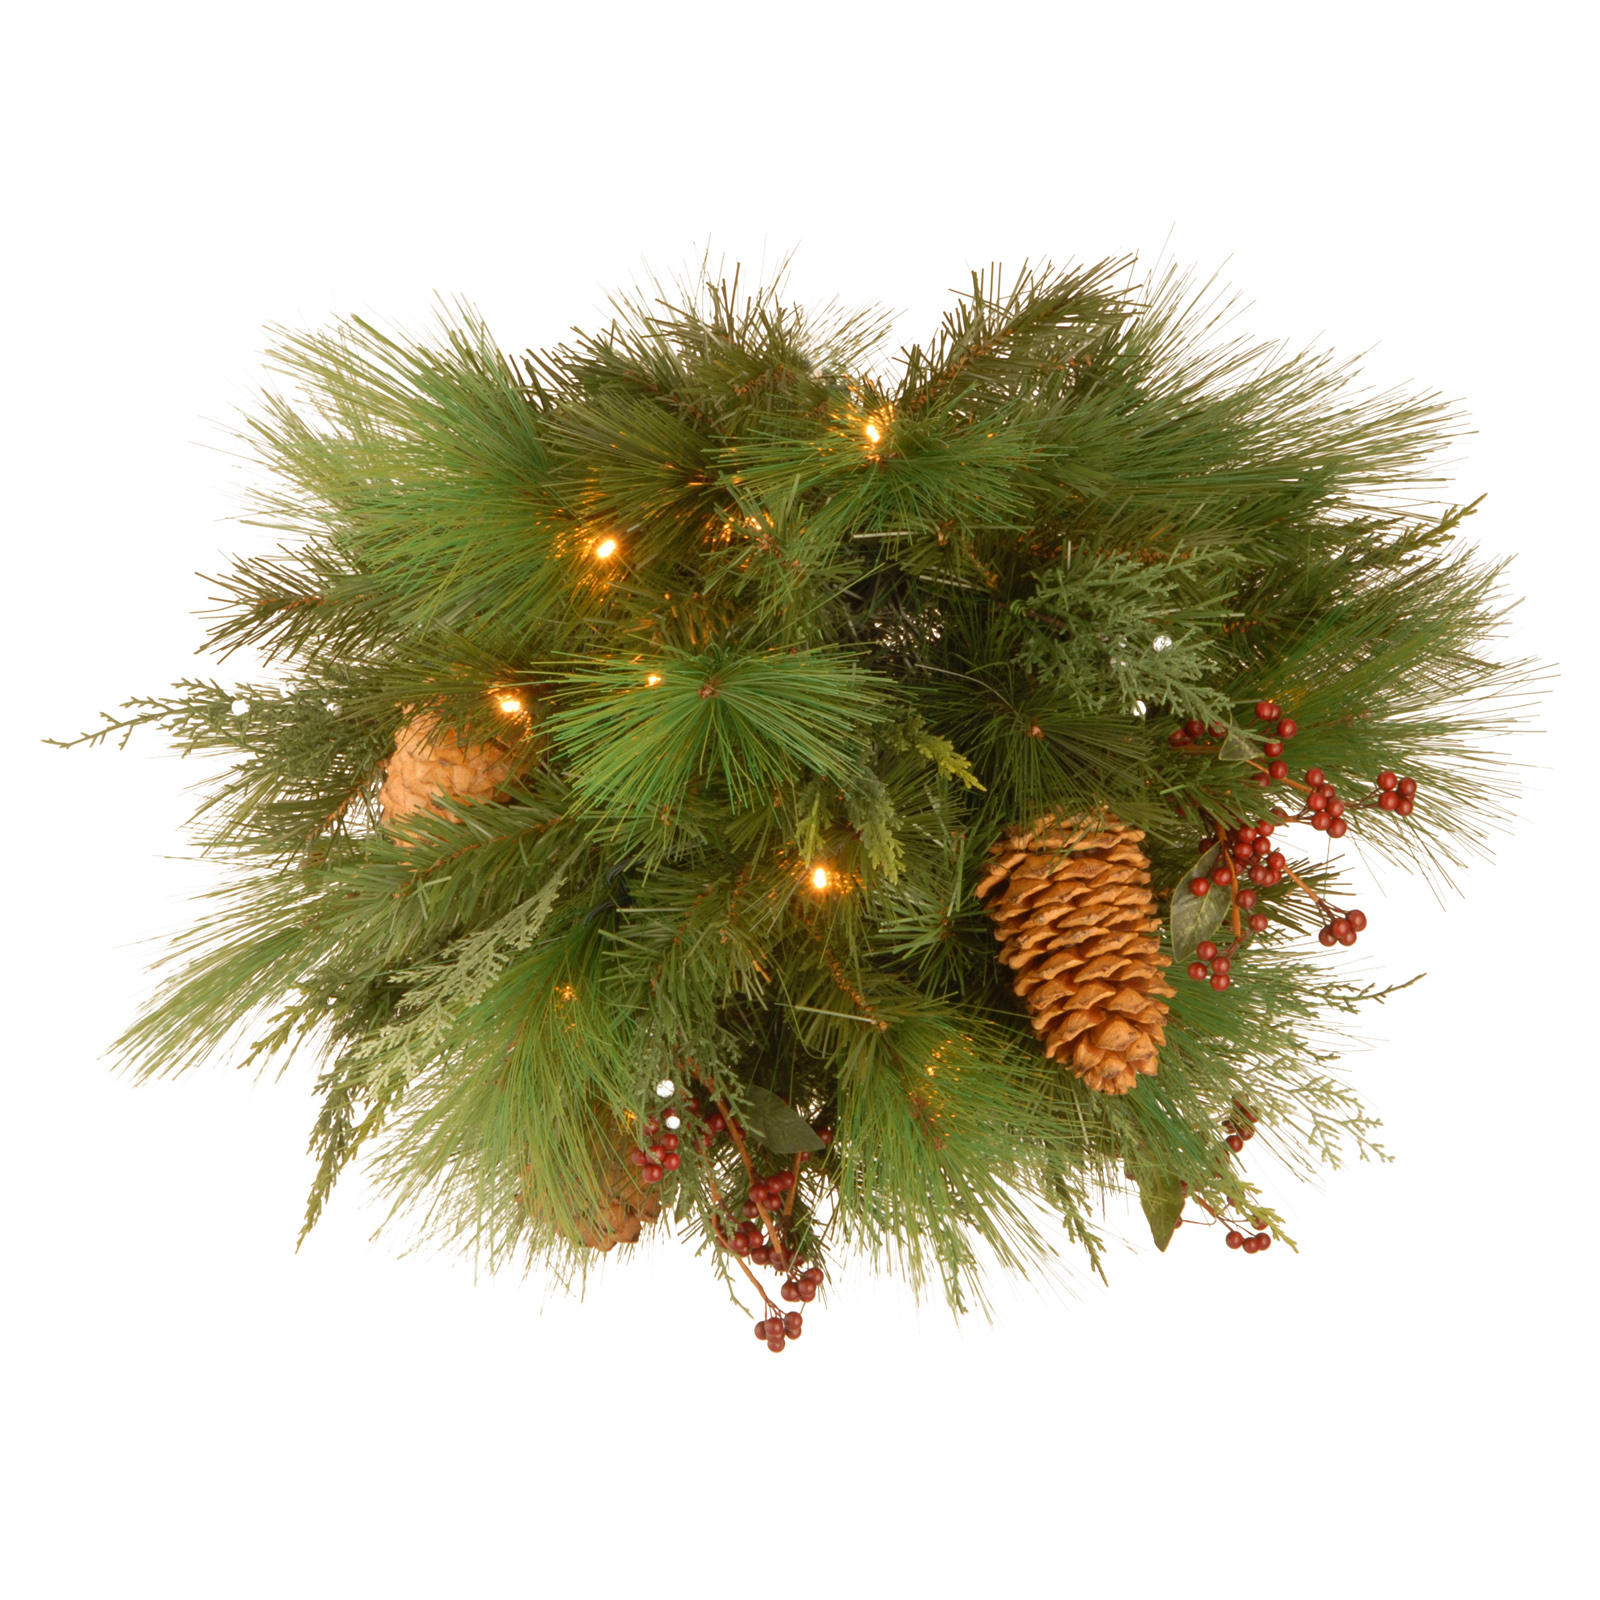 20 in. White Pine Pre Lit LED Kissing Ball   Battery Operated   Wreaths